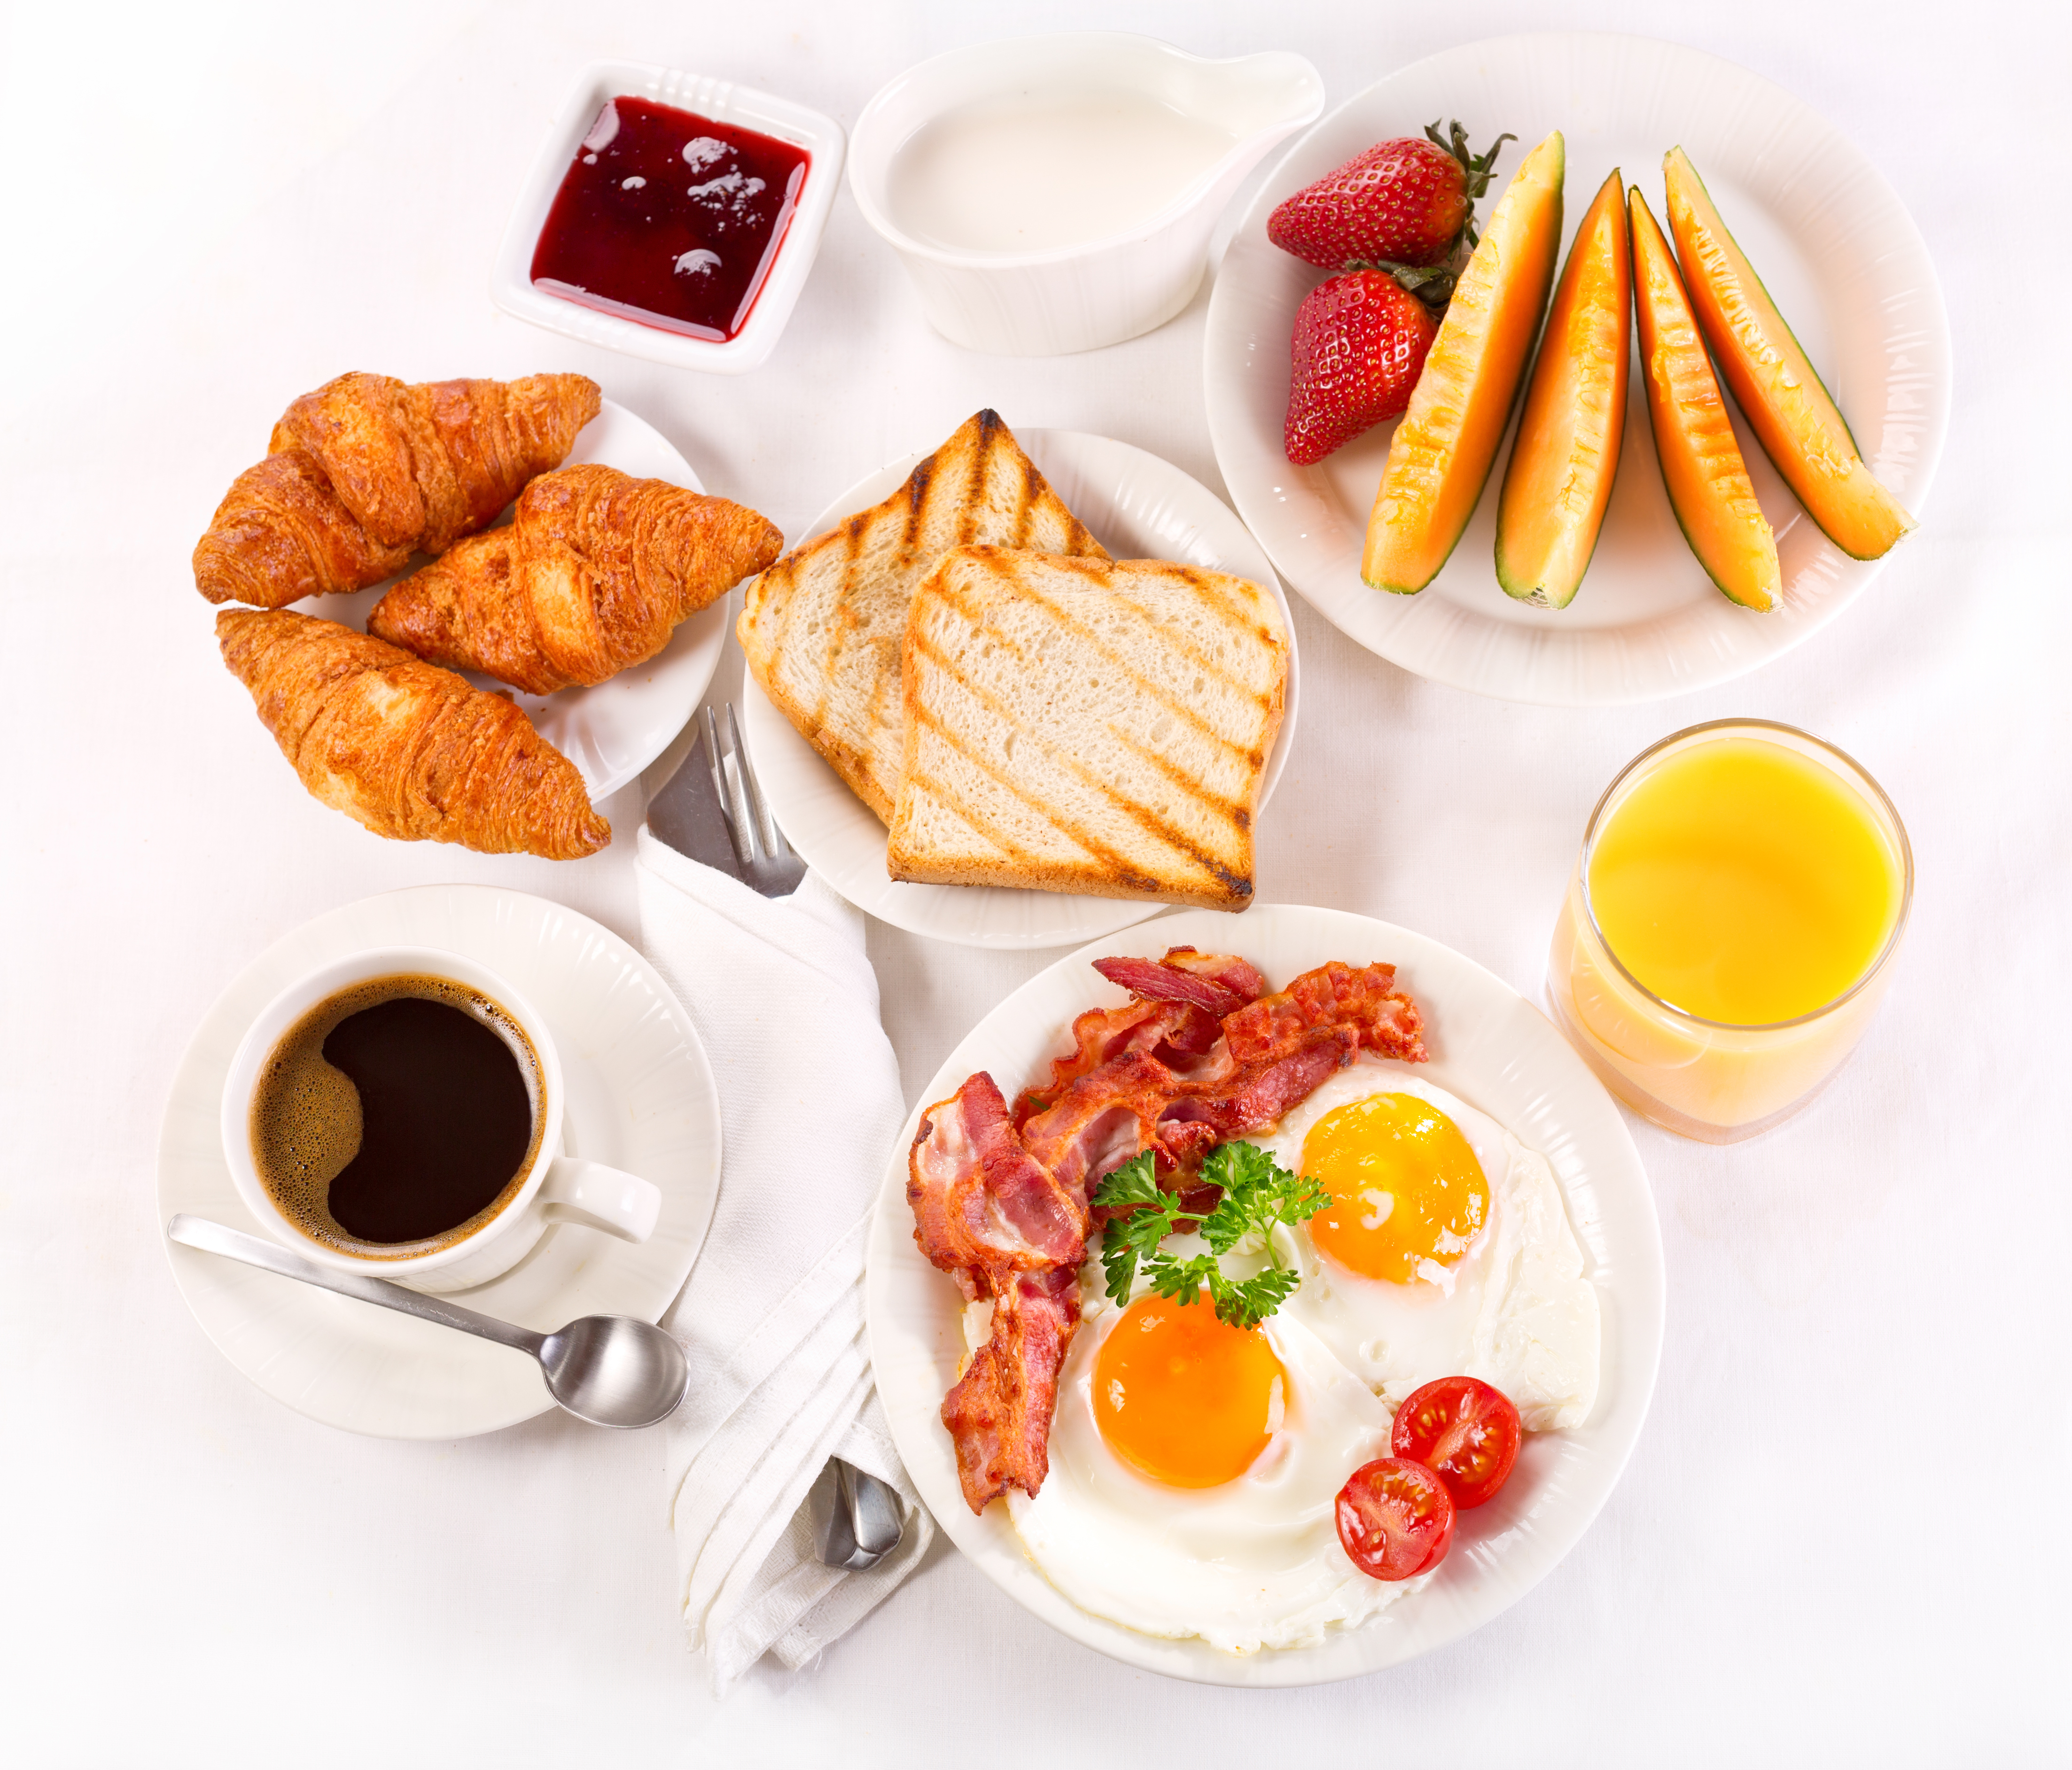 Breakfast 4k Ultra HD Wallpaper And Background Image